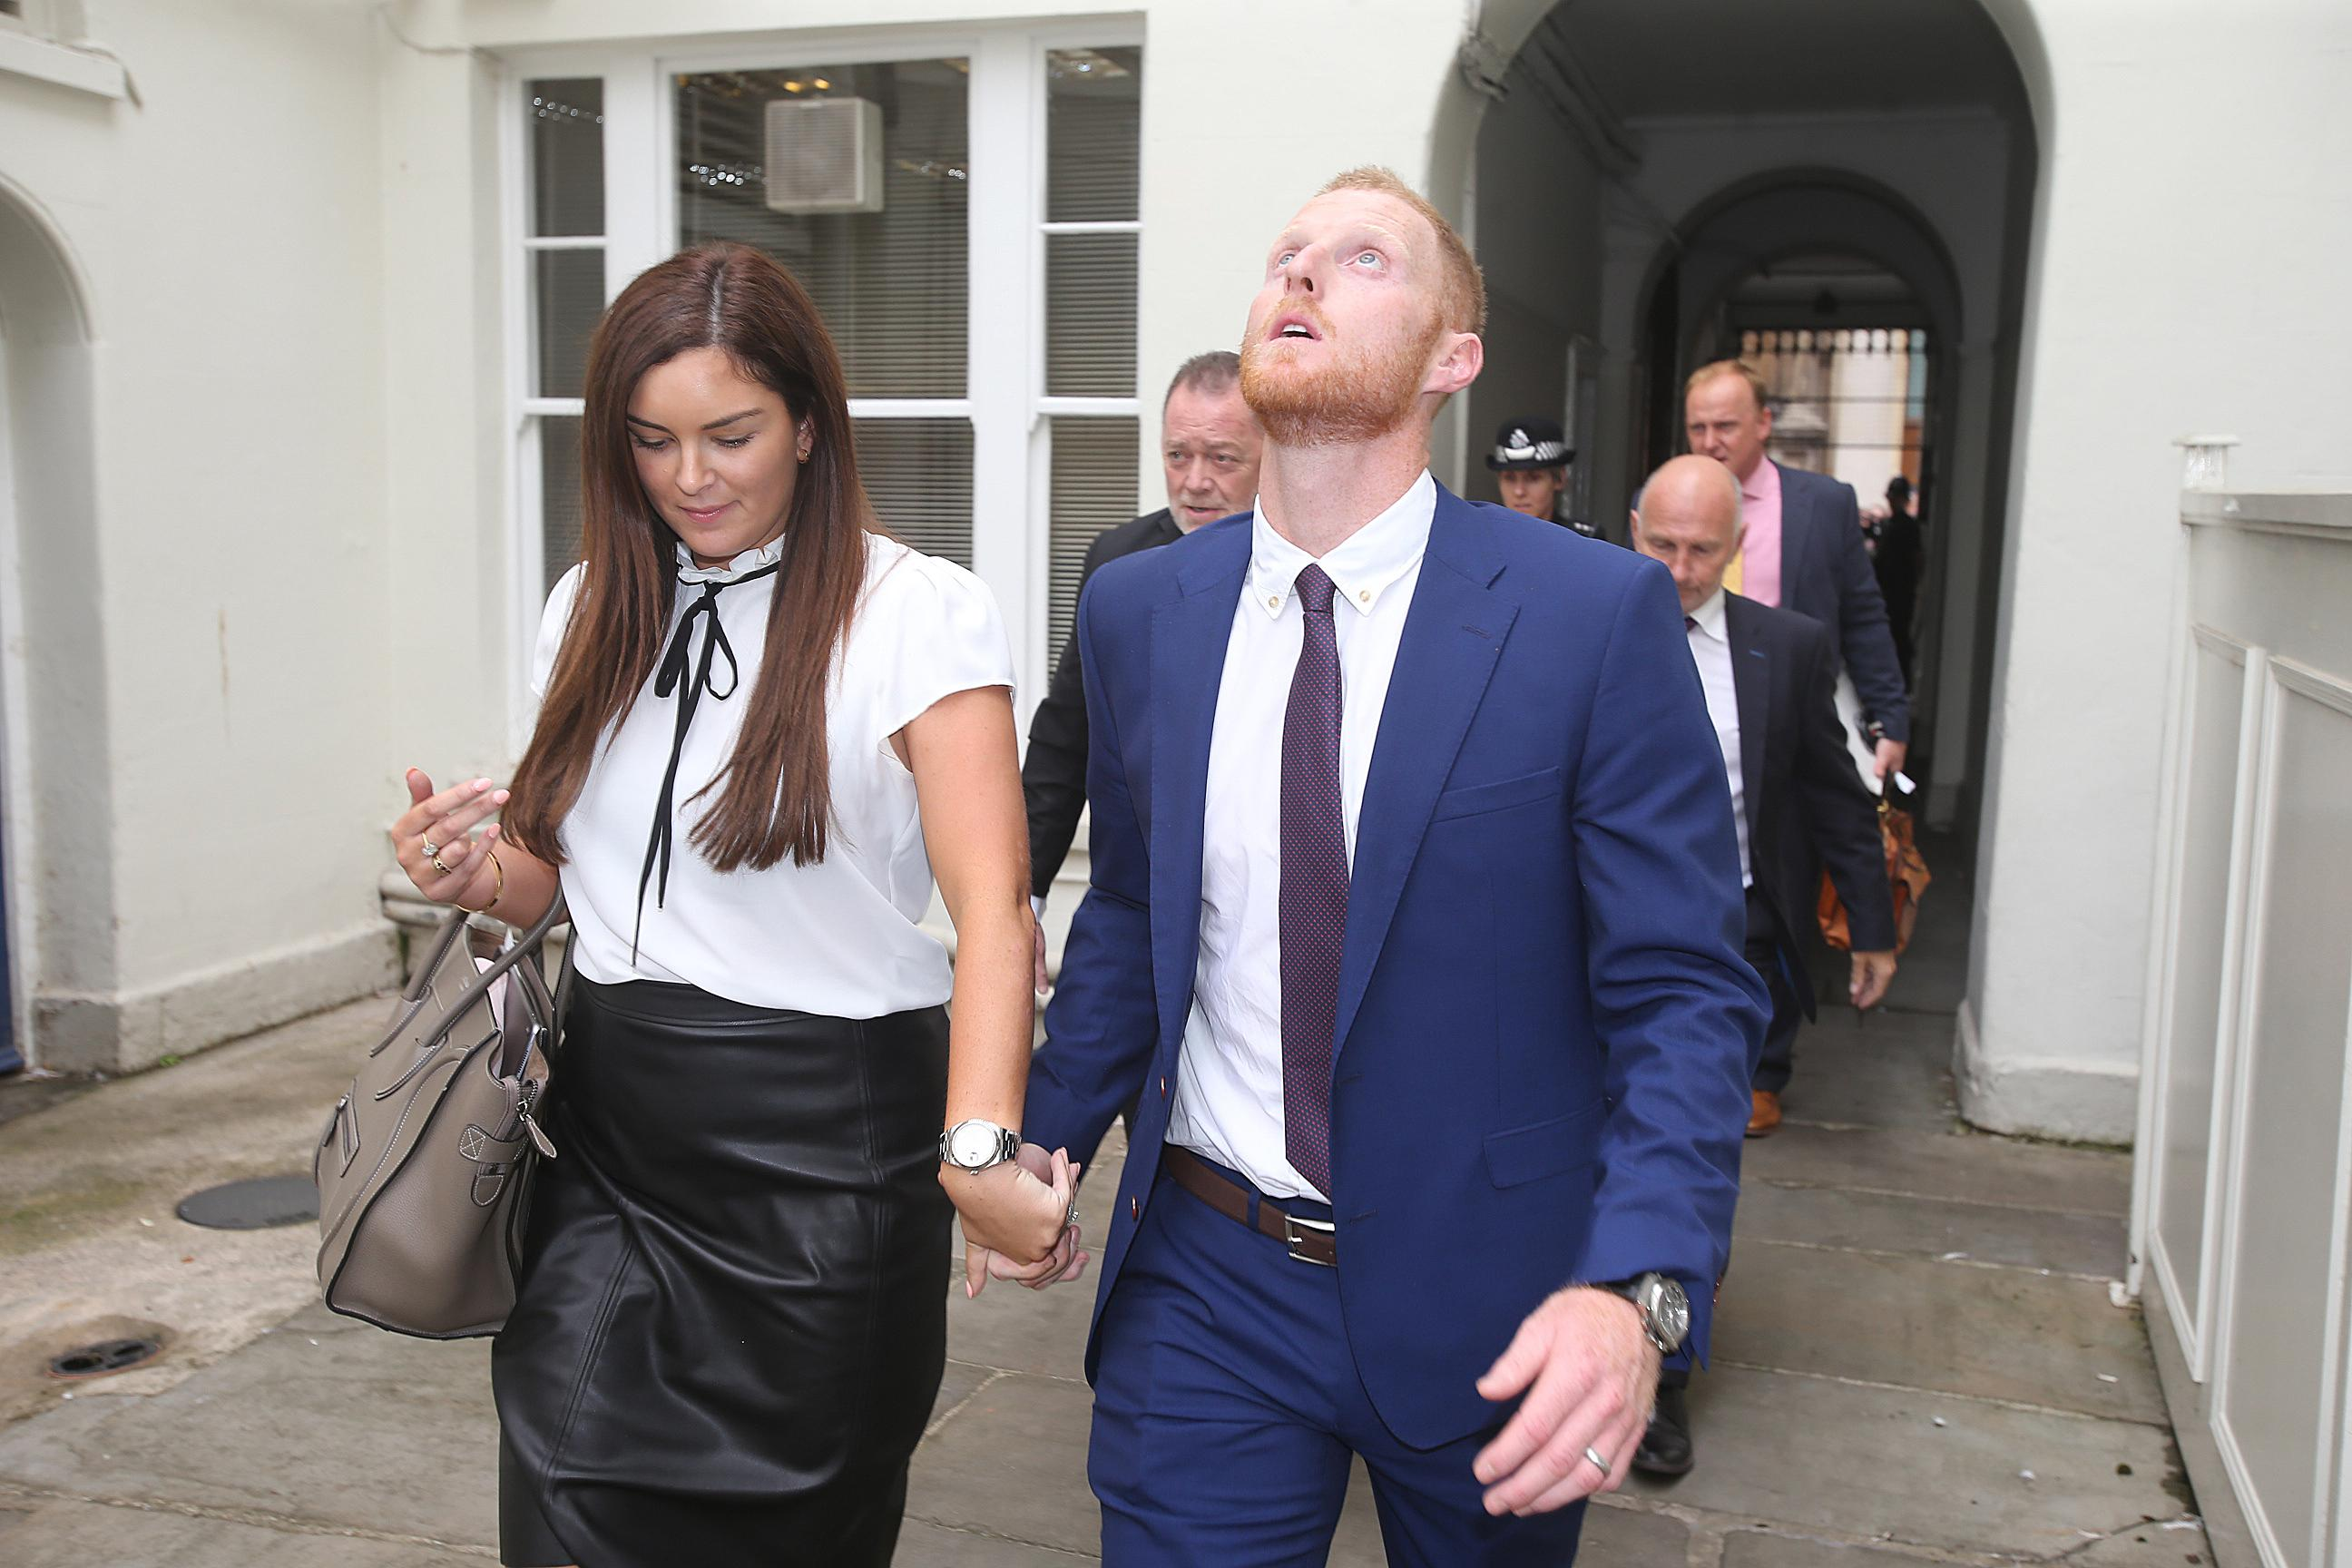 Ben Stokes fought back tears after being cleared of affray